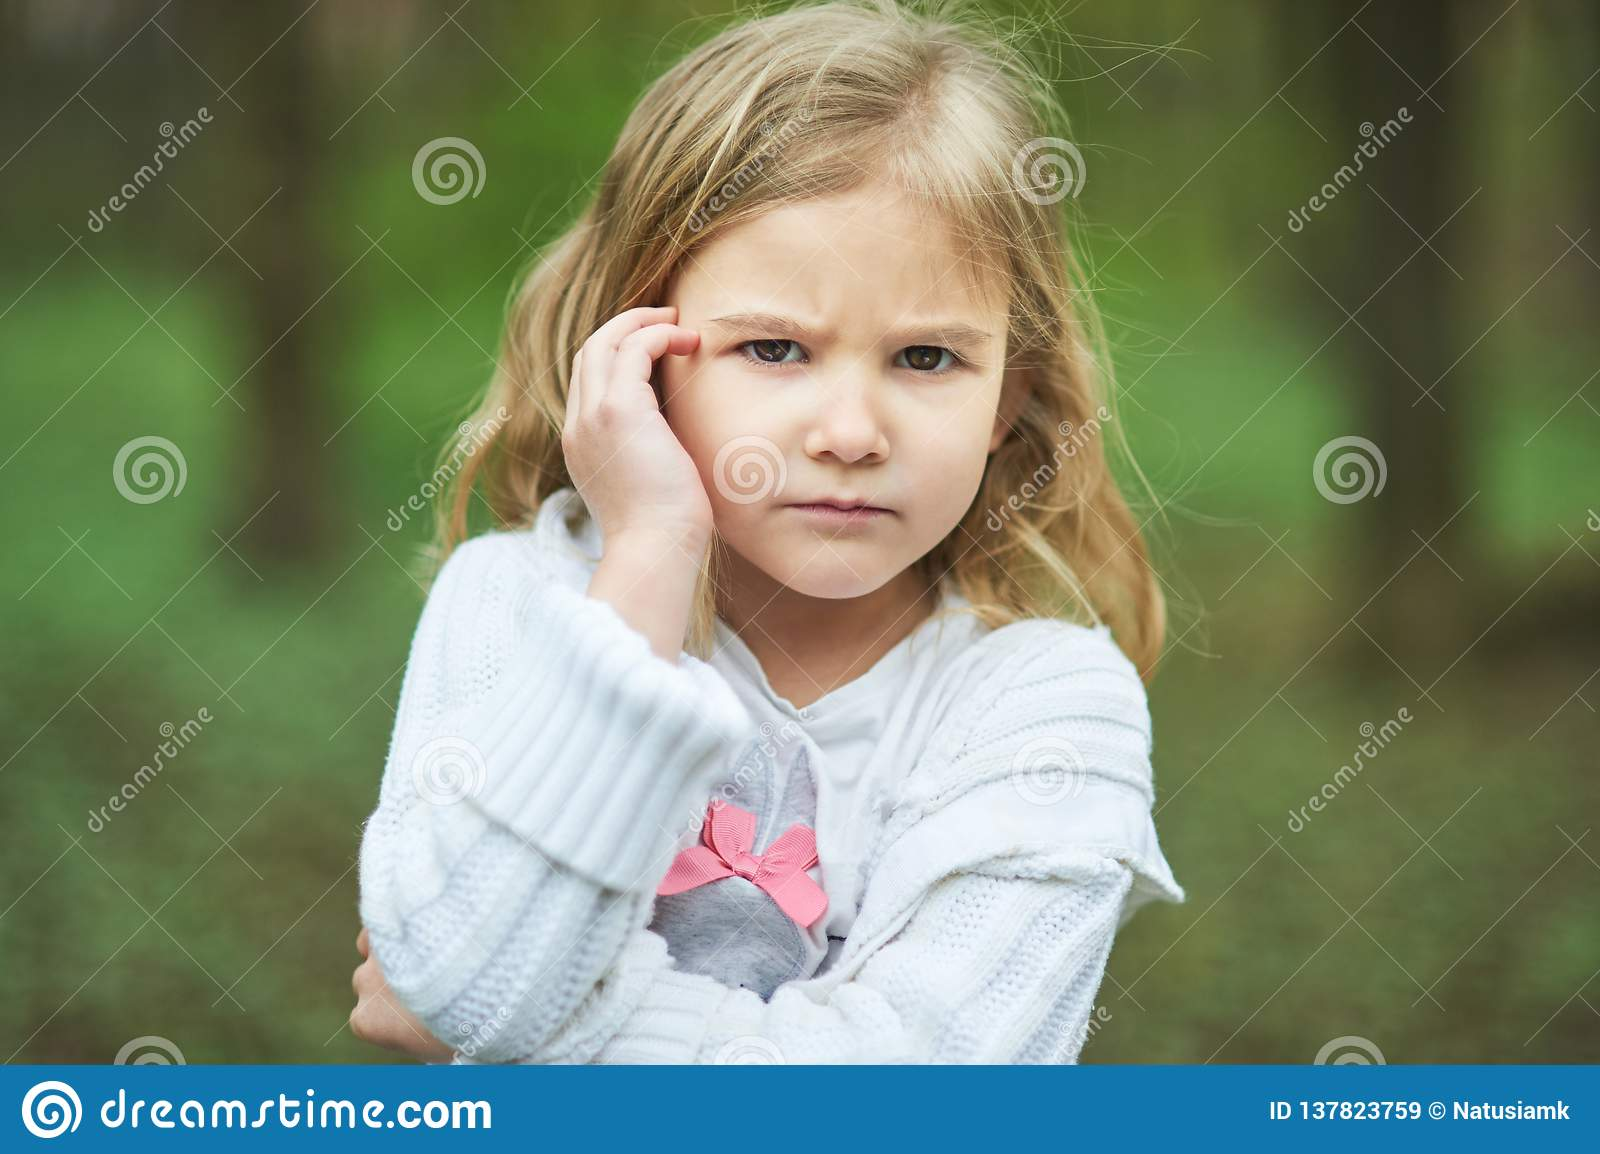 Portrait of sad unhappy little girl. Little sad child is lonesome. upset and distraught angry facial expression.